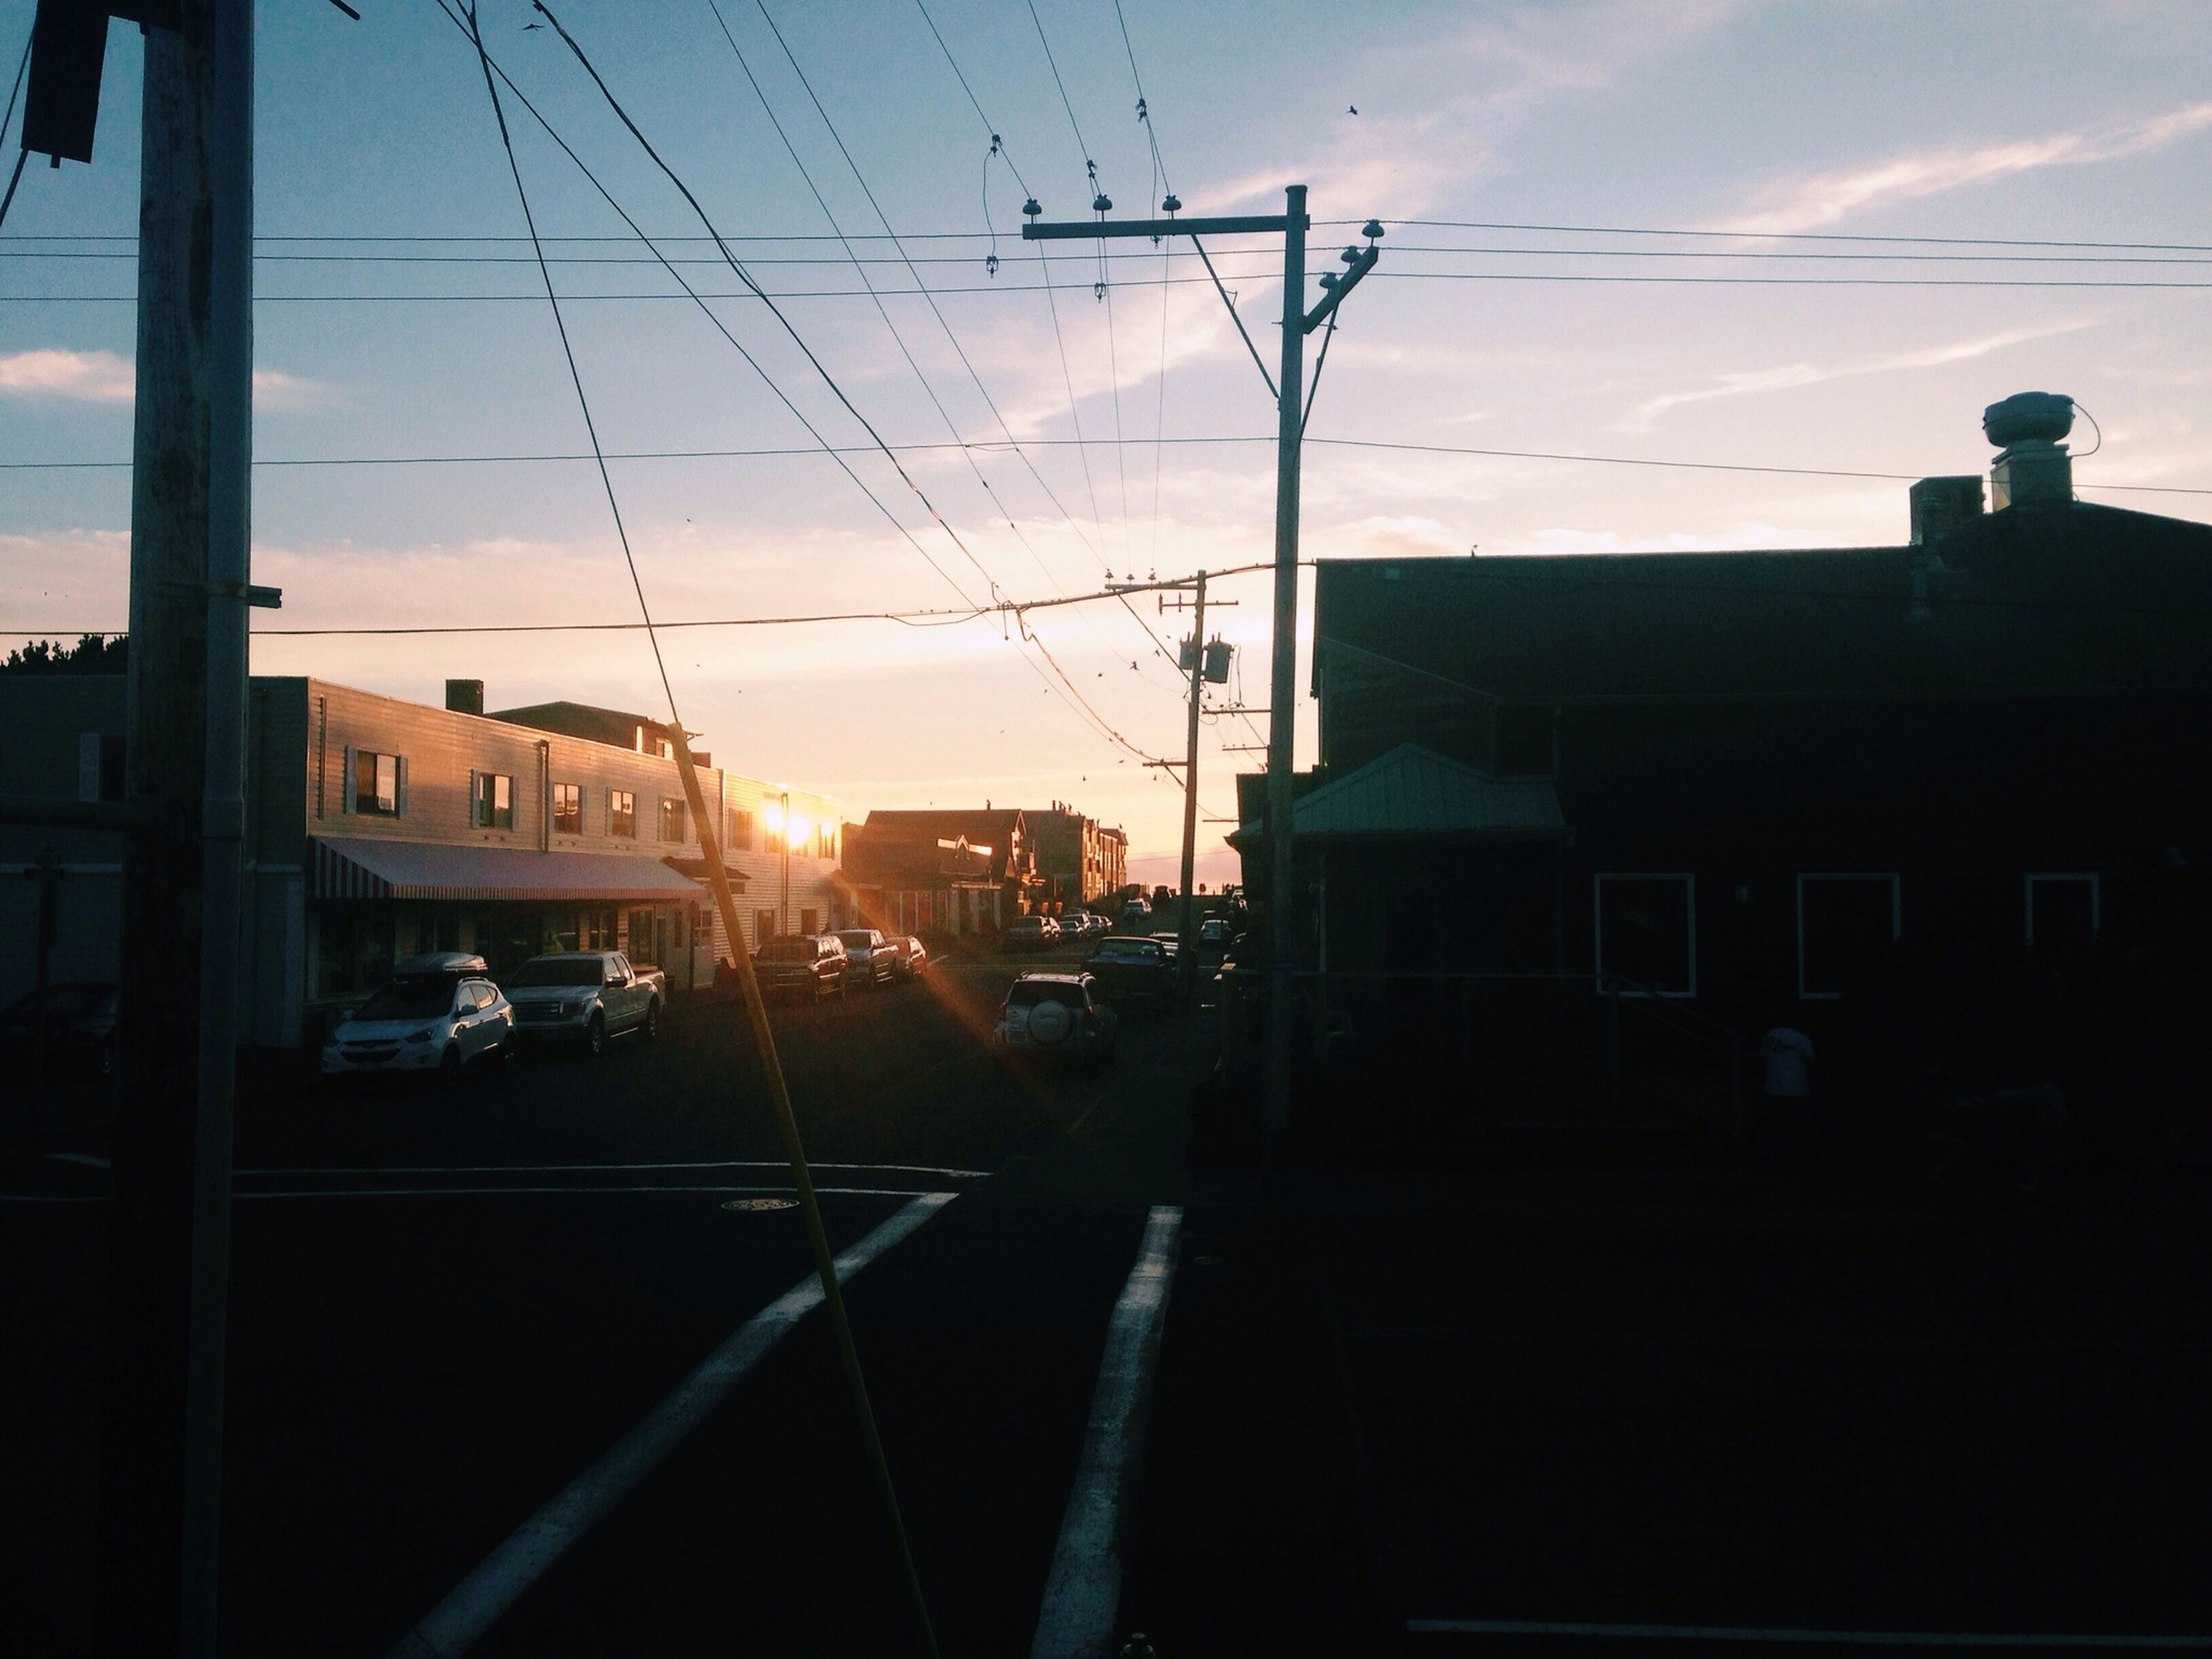 sunset, power line, electricity pylon, building exterior, transportation, sky, built structure, silhouette, architecture, cable, electricity, mode of transport, power supply, sun, street, car, power cable, sunlight, city, railroad track